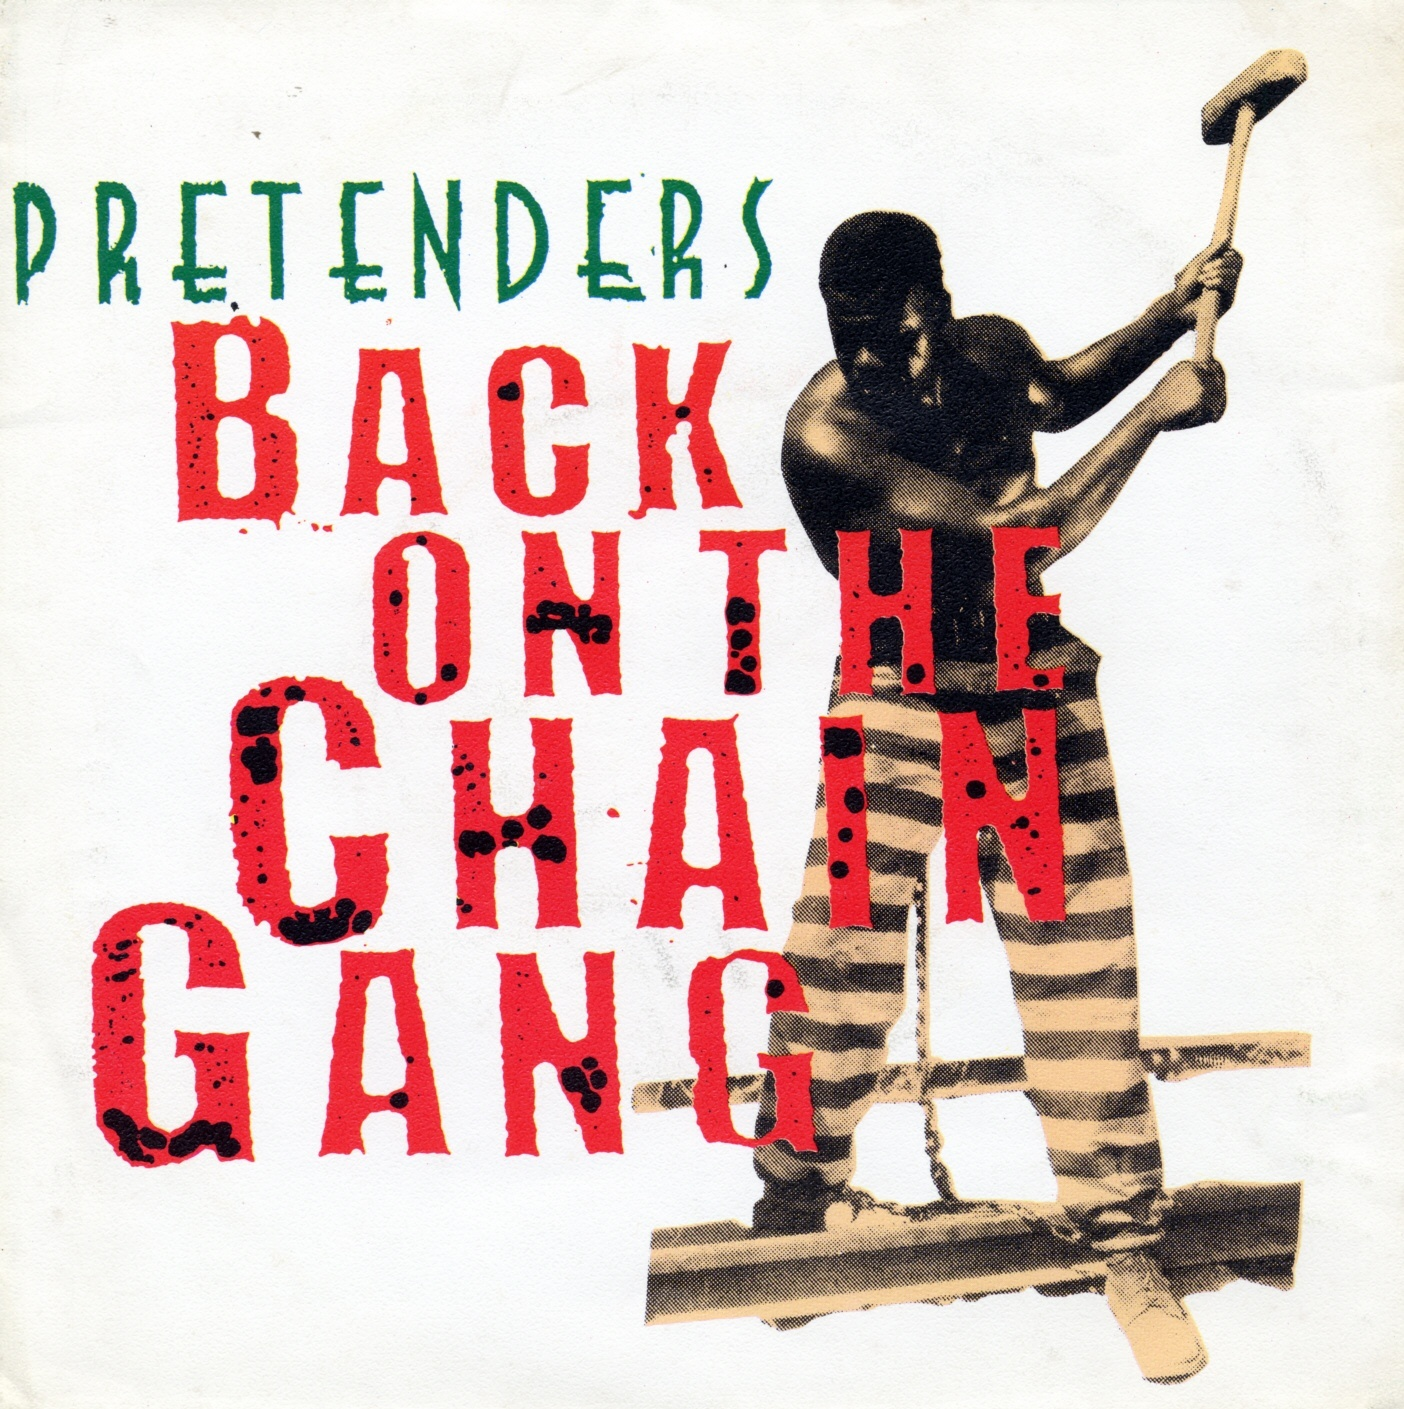 Back on the chain gang (Foto: The Pretenders)